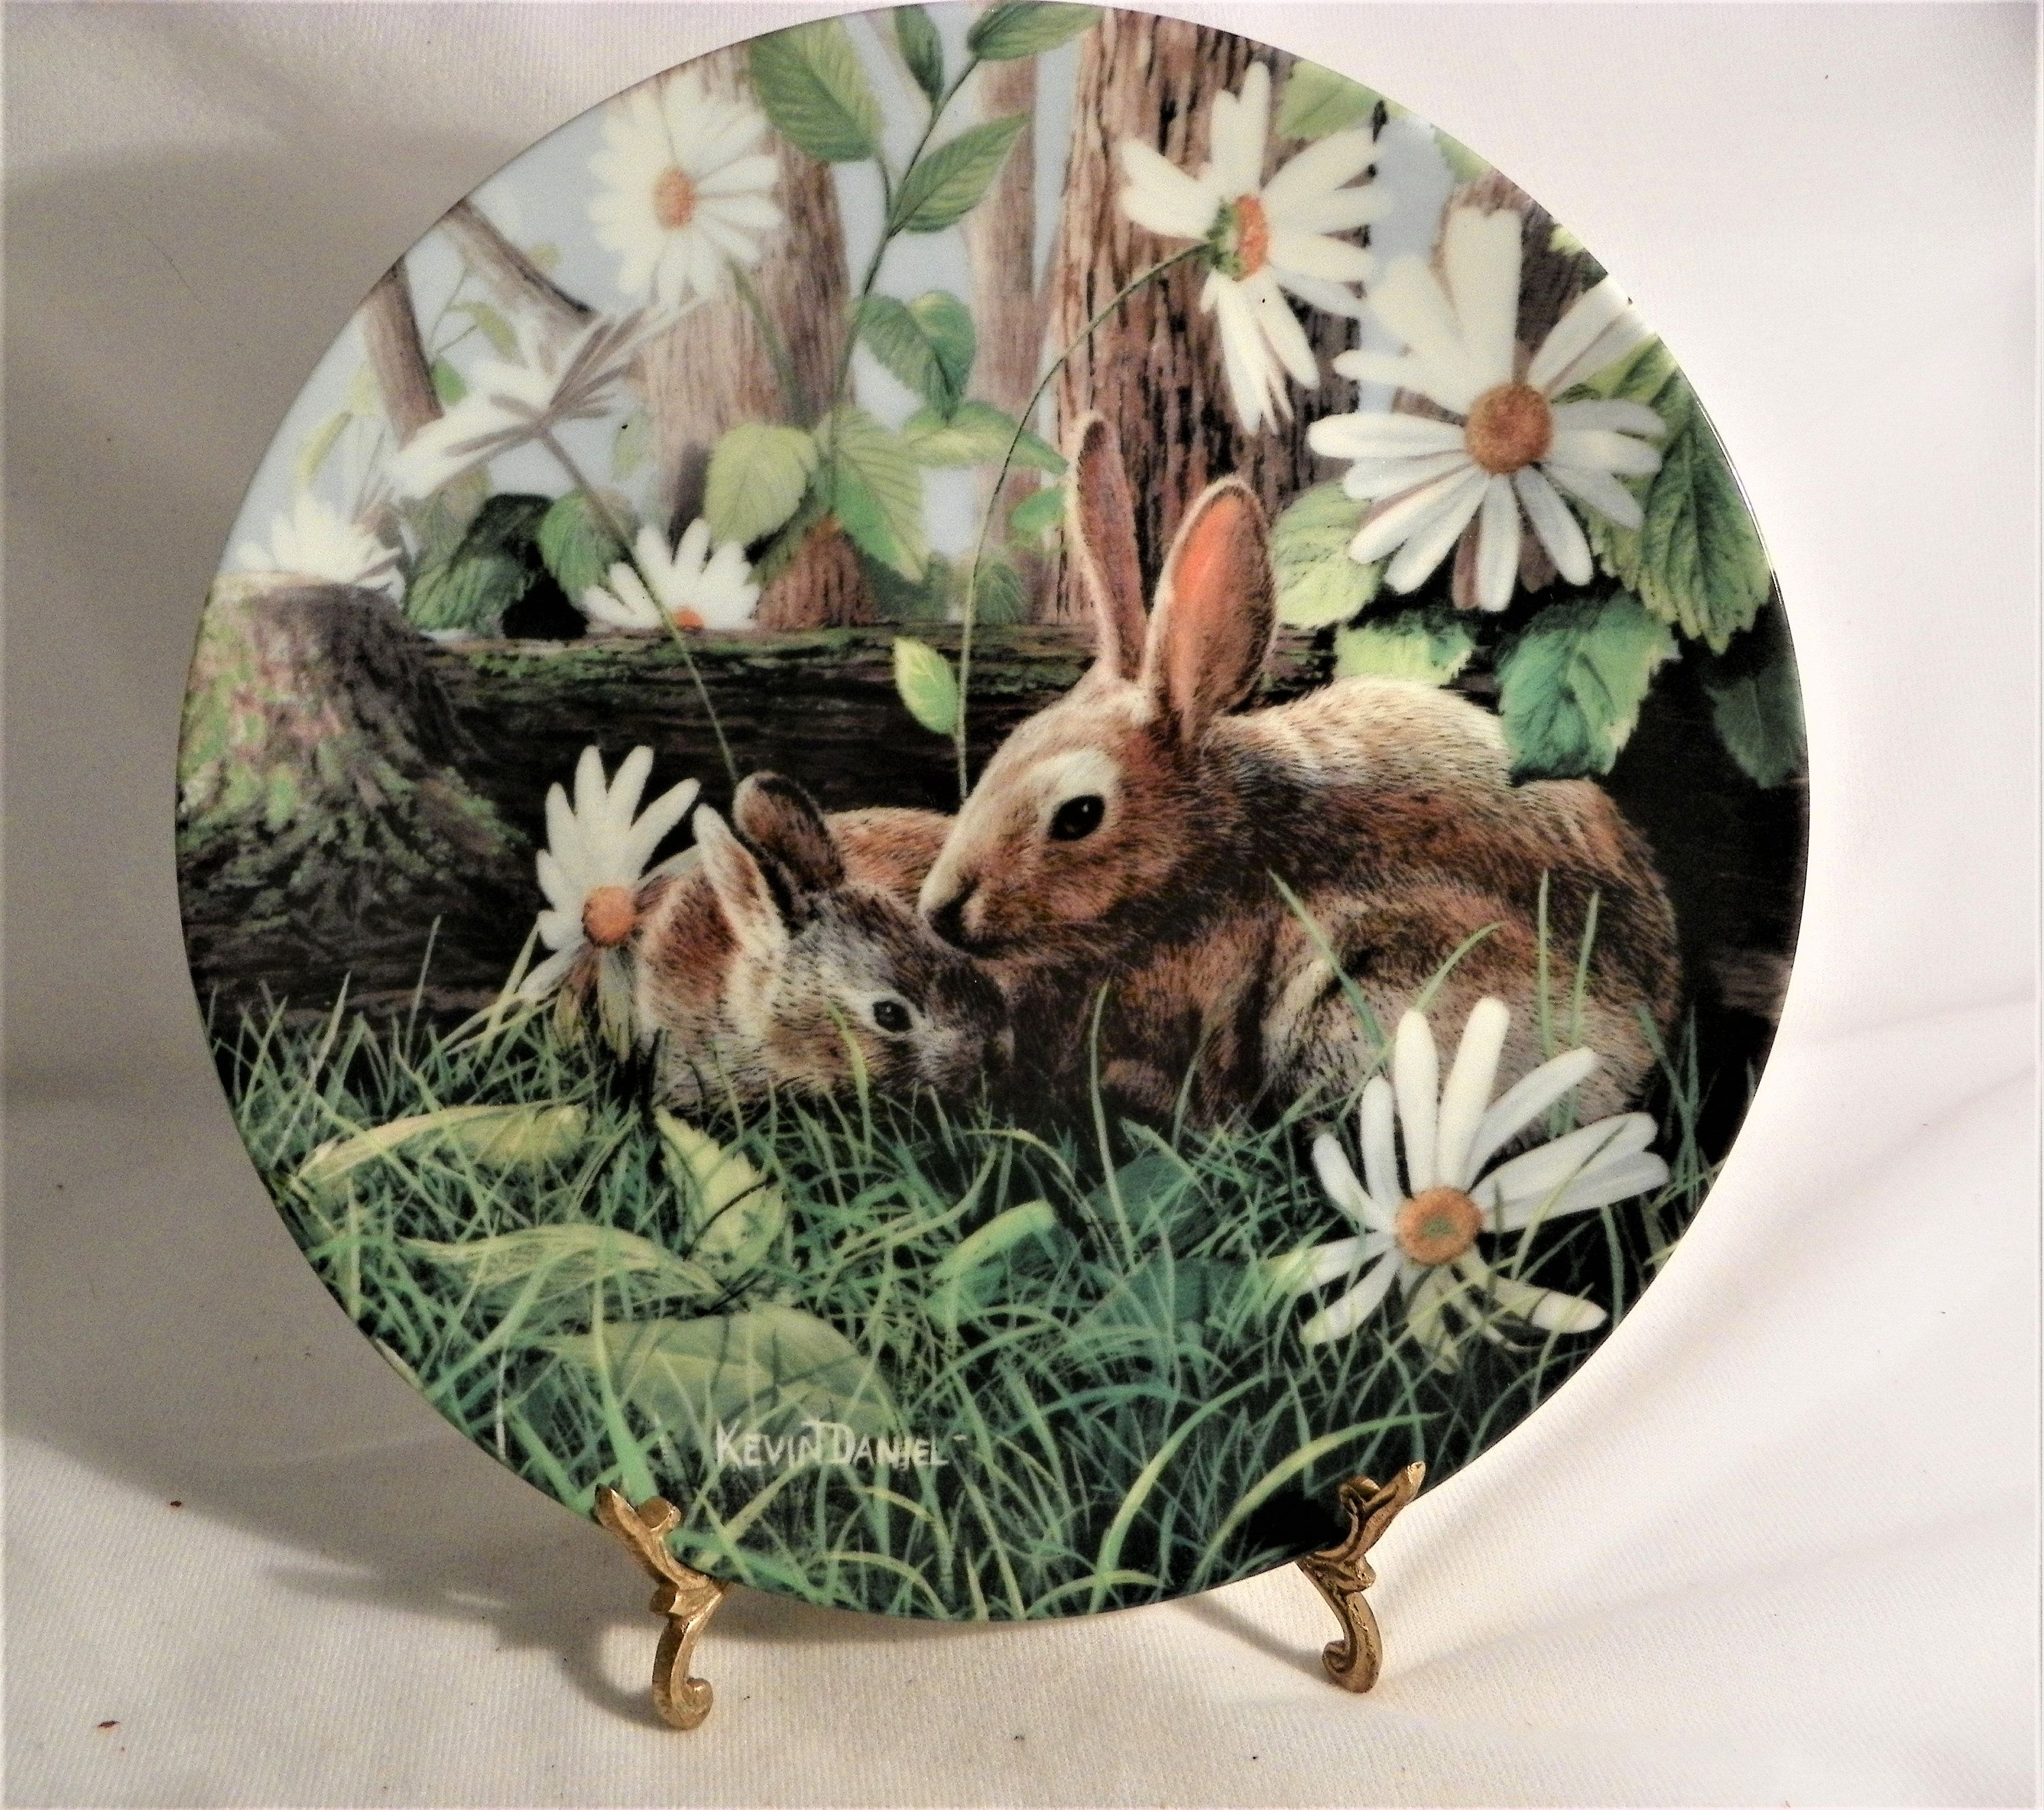 The Rabbit Plate By Kevin Daniel 1st Issue In Encyclopedia Rabbit Plate Antique Collection Girls Music Box